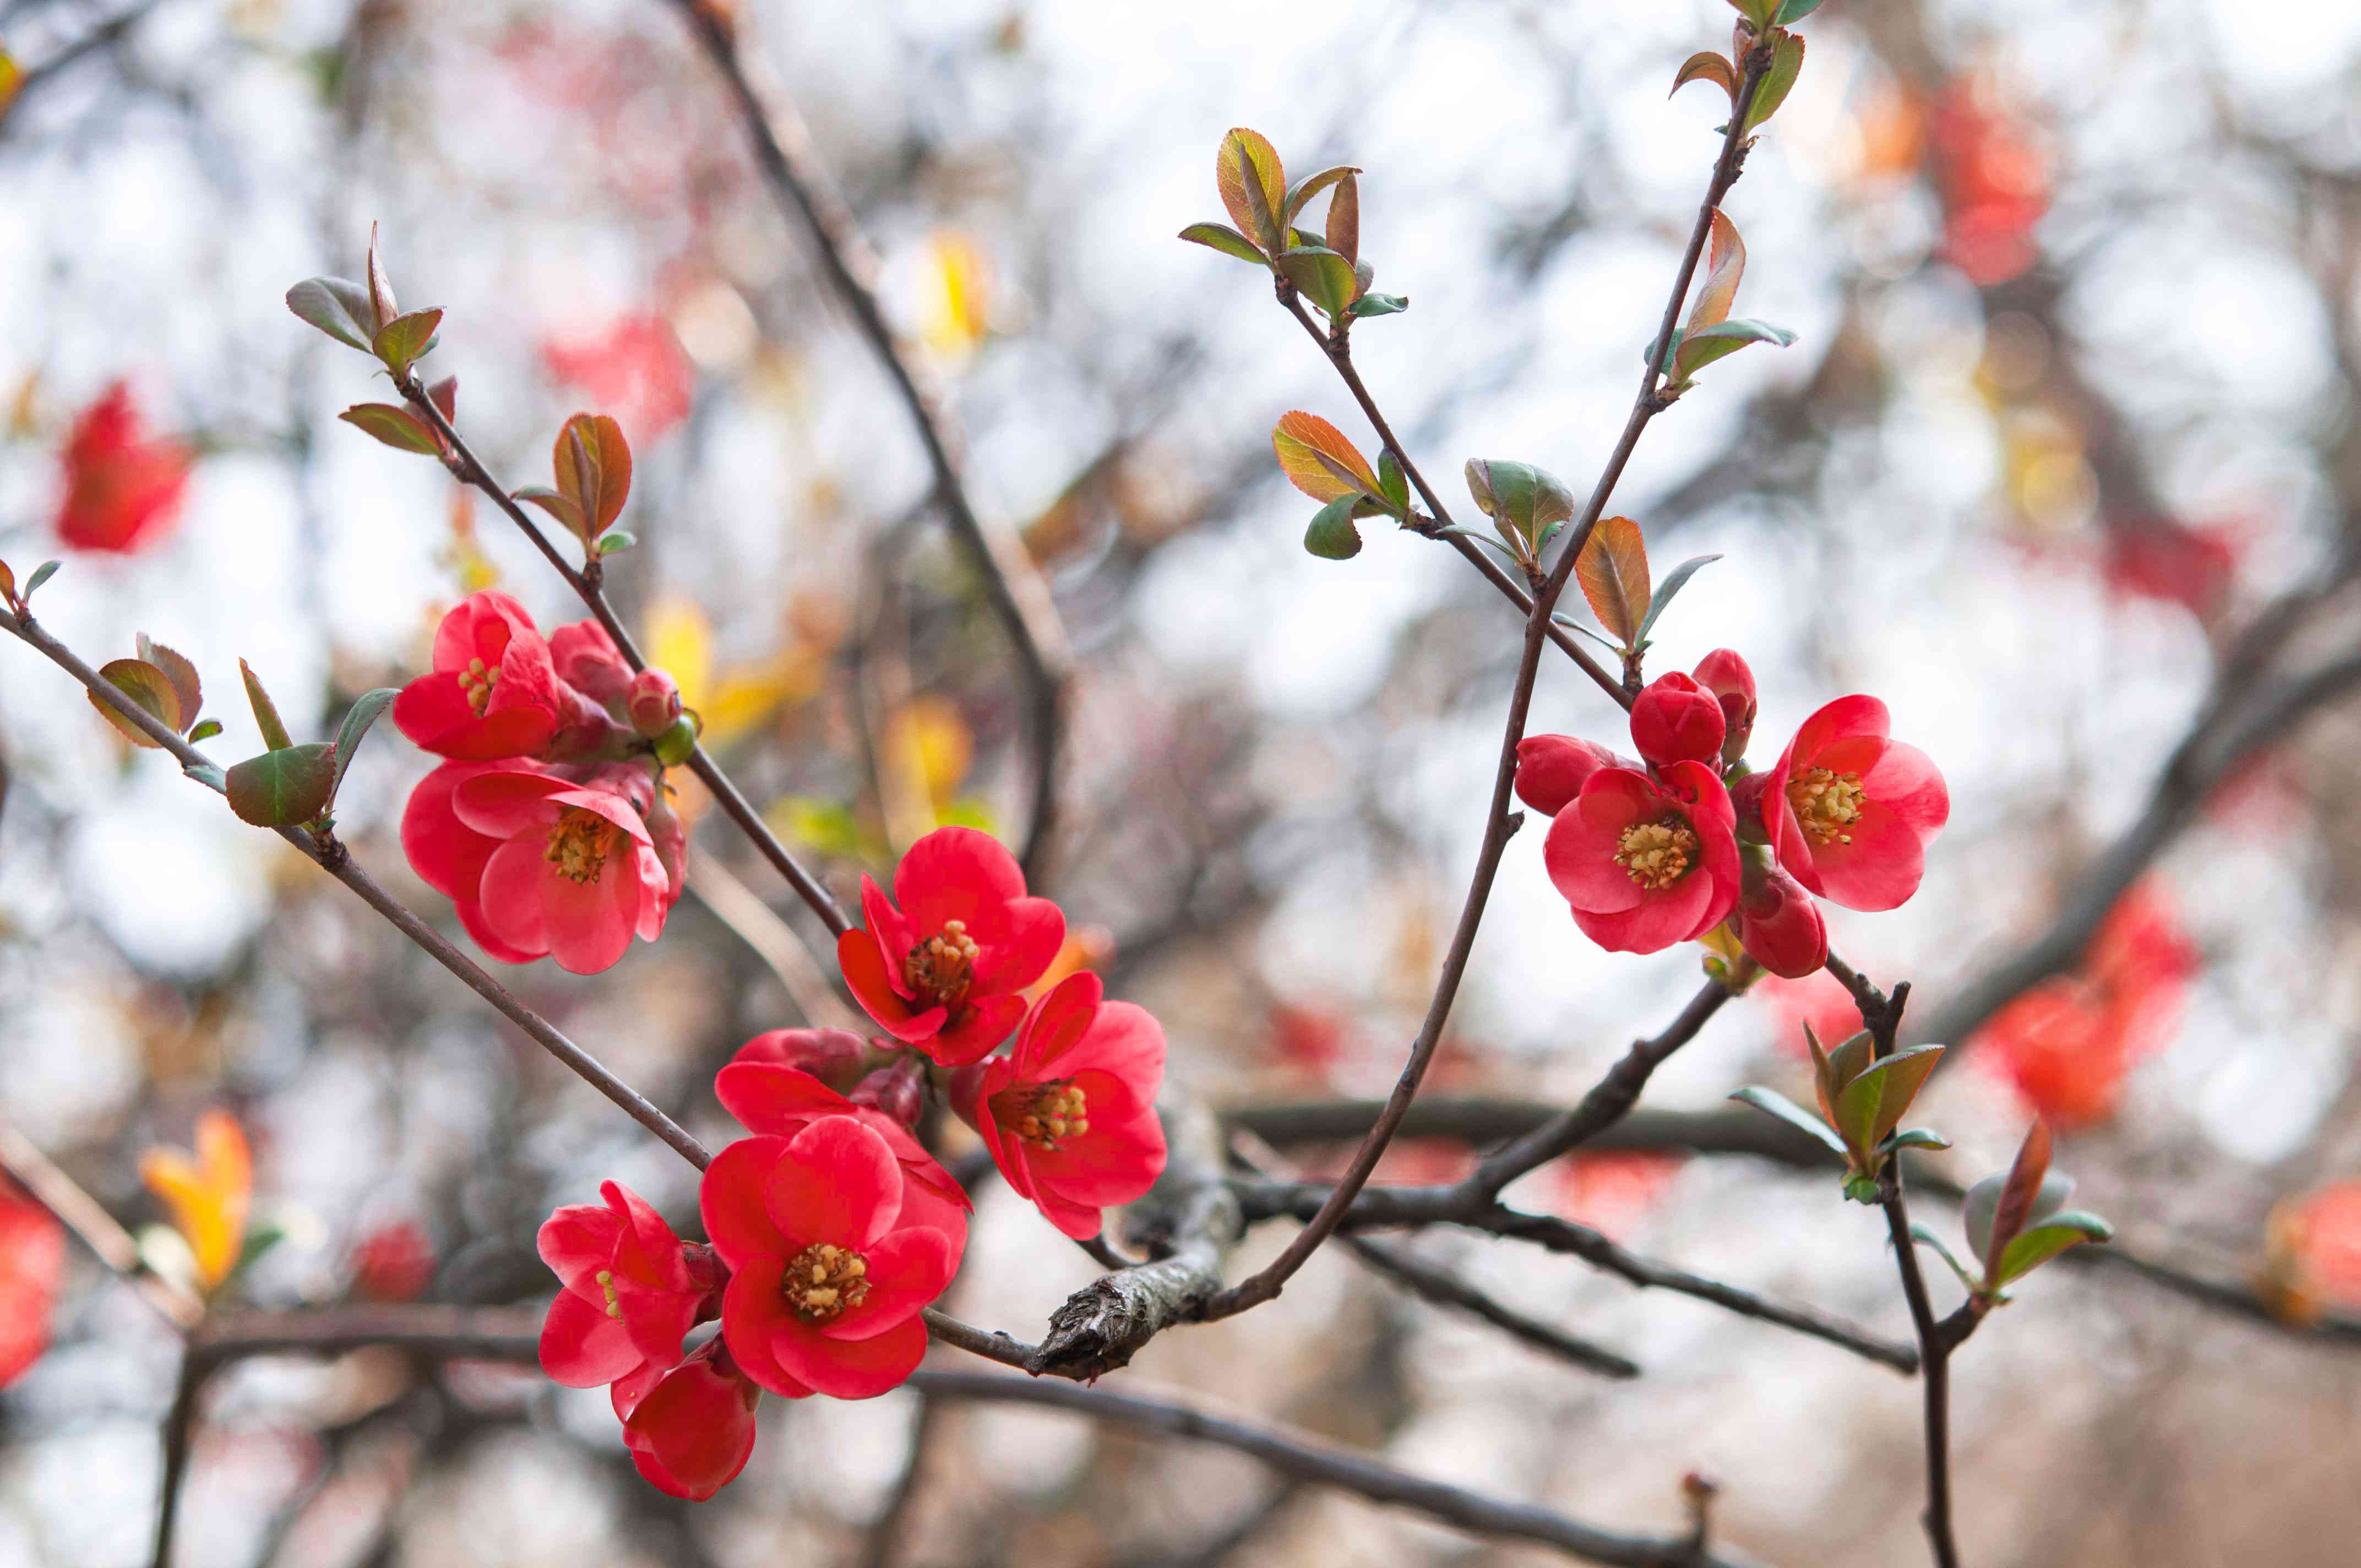 Flowering quince shrub with small rounded flowers with yellow centers on nearly bare branches